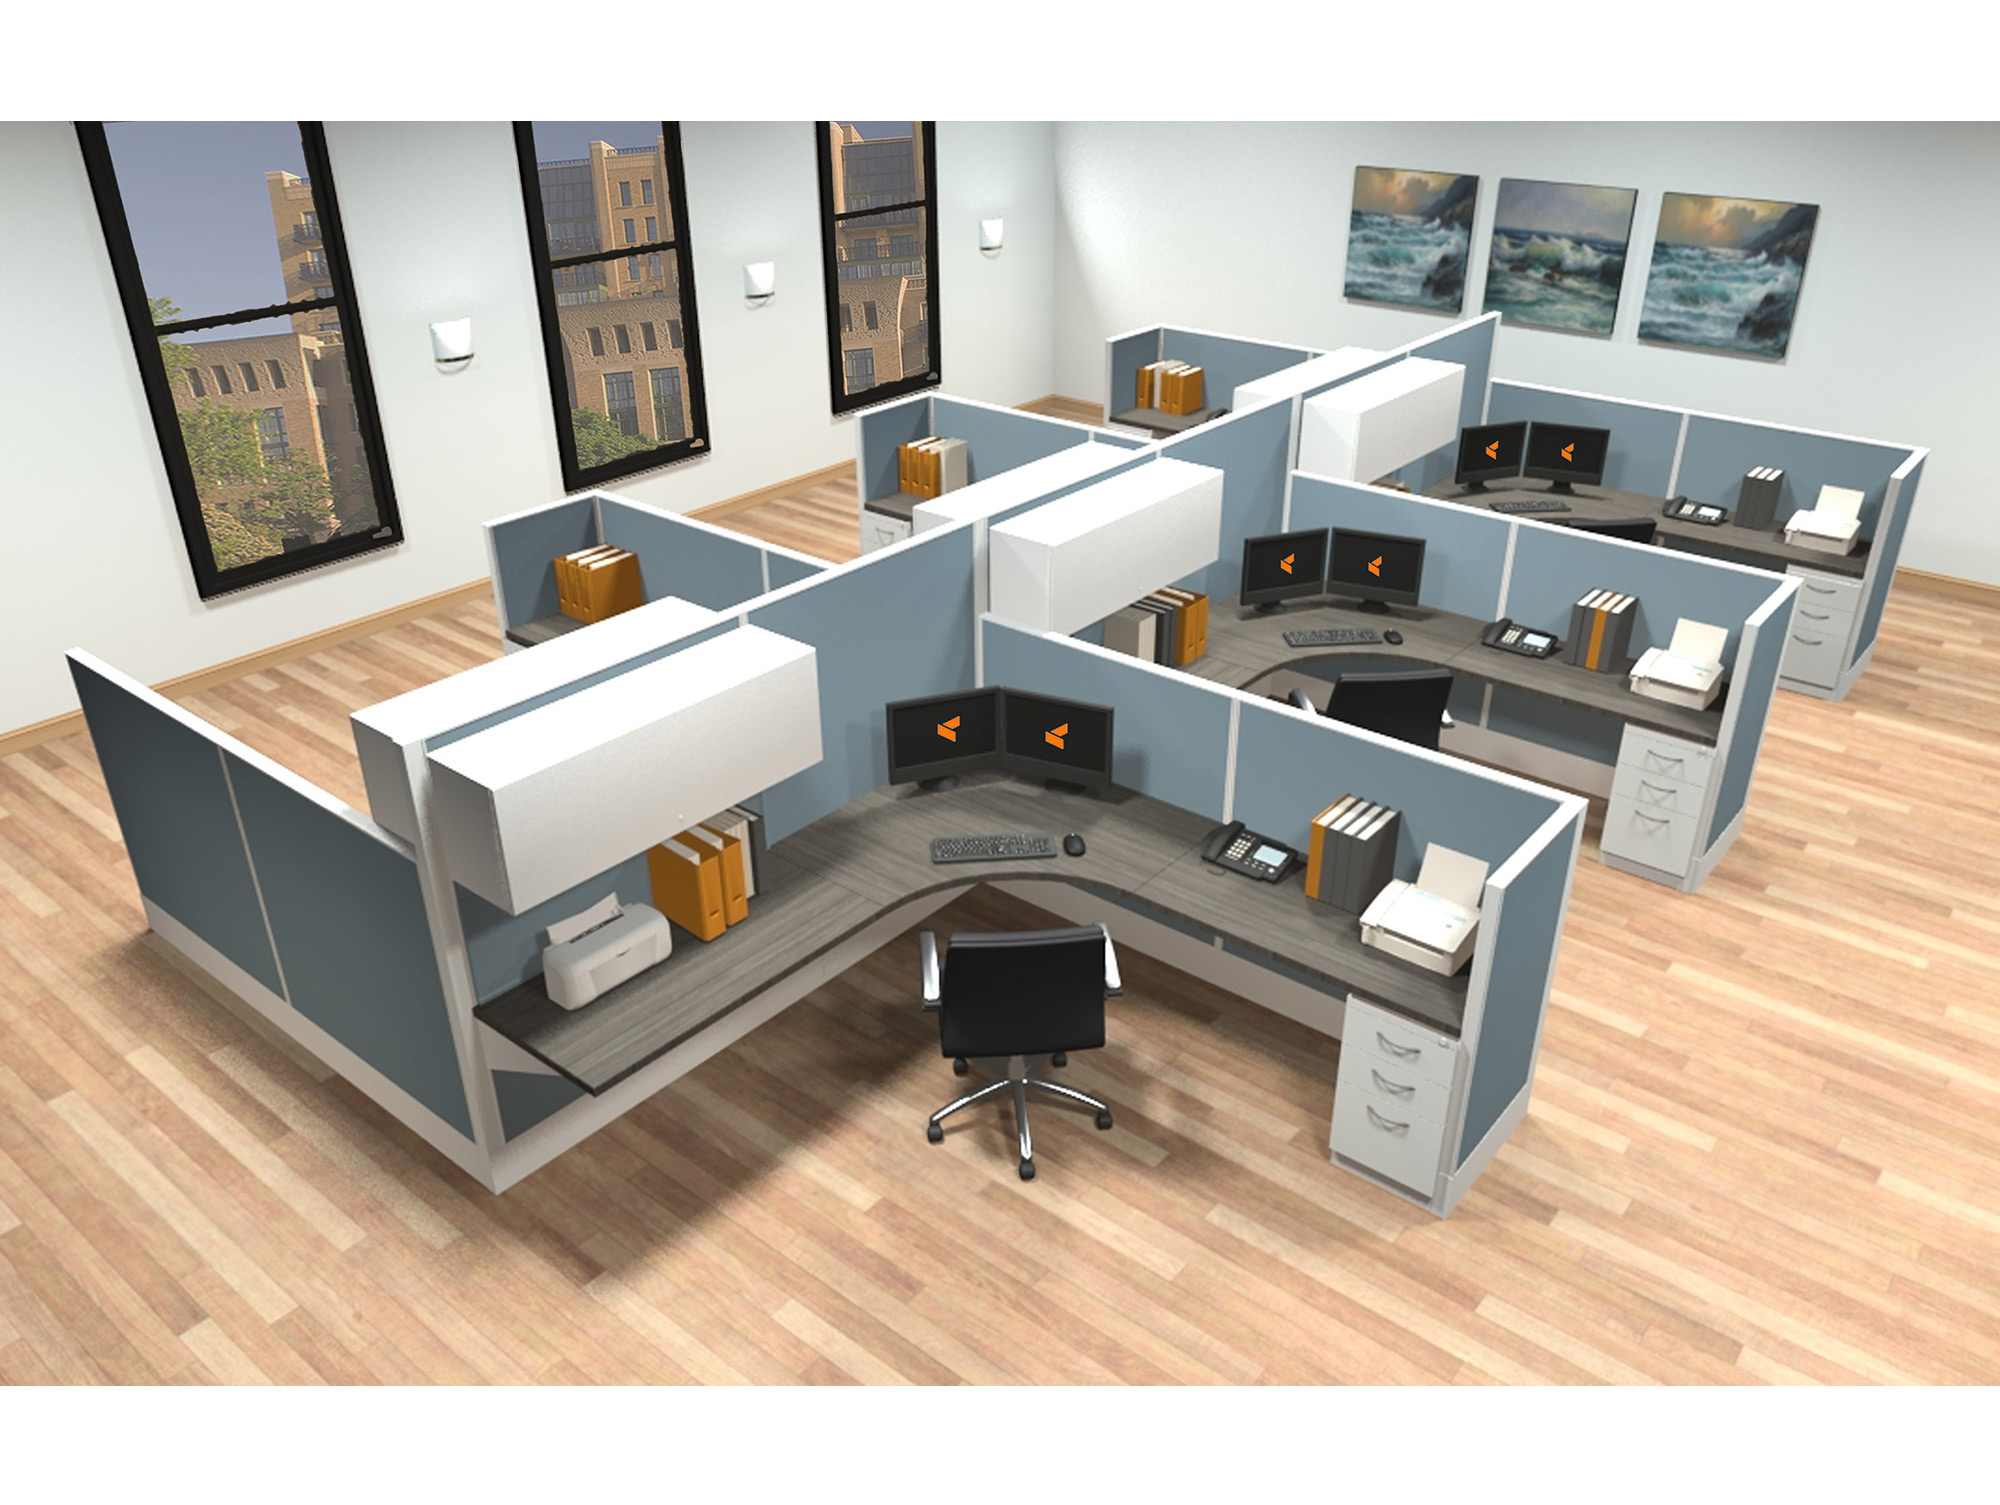 folding dining table with chair storage kitchen chairs on wheels swivel 2 office system furniture - modular workstations ais